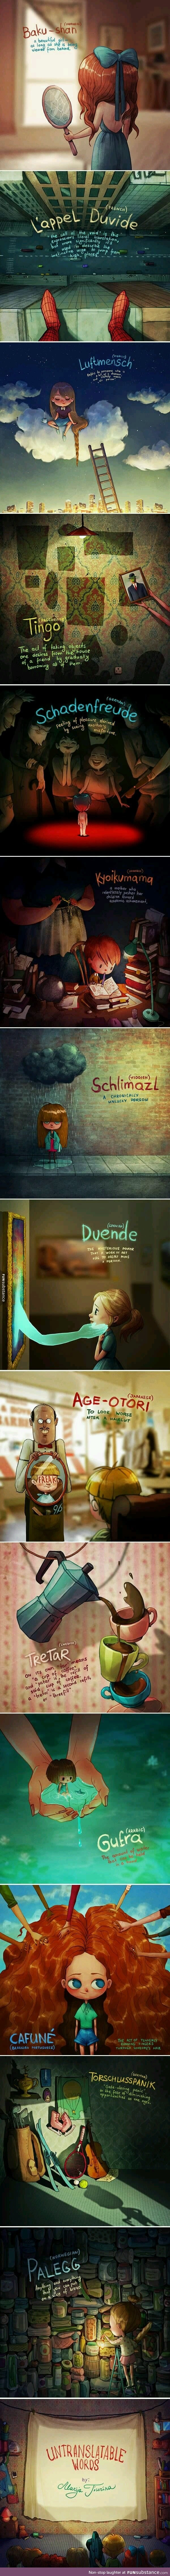 Untranslatable Words Turned Into Drawings